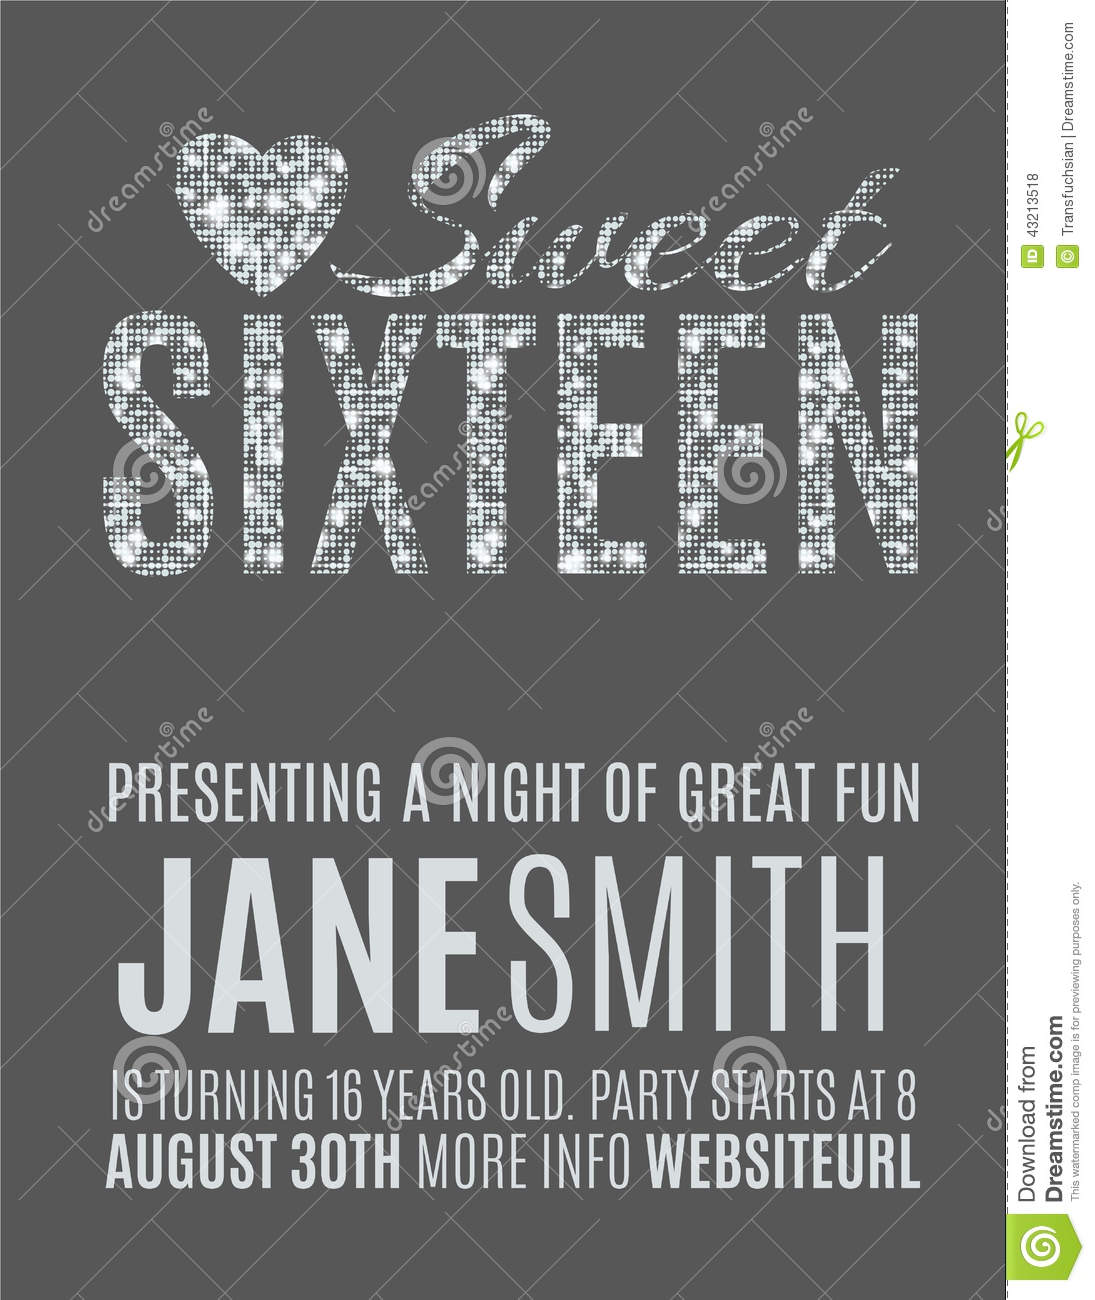 Sweet Party Invitation Template Stock Vector Illustration Of - Sweet 16 party invitations templates